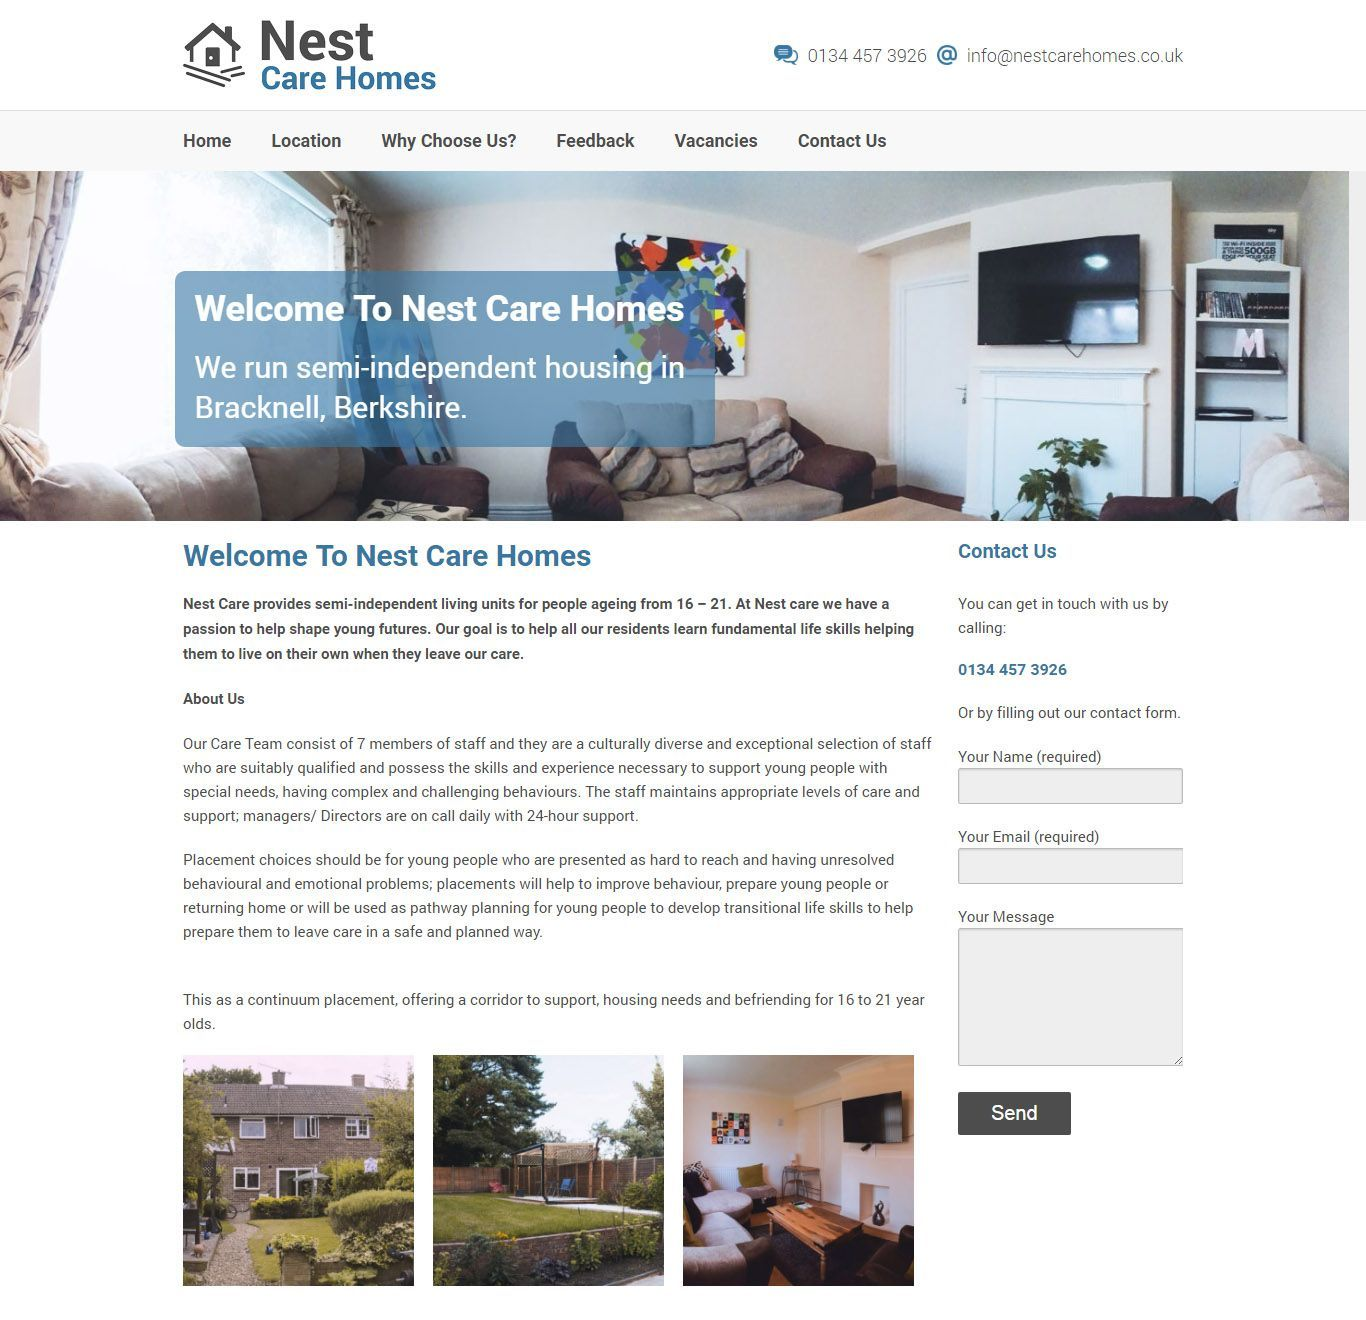 Emejing care home website design images interior design Home decor website